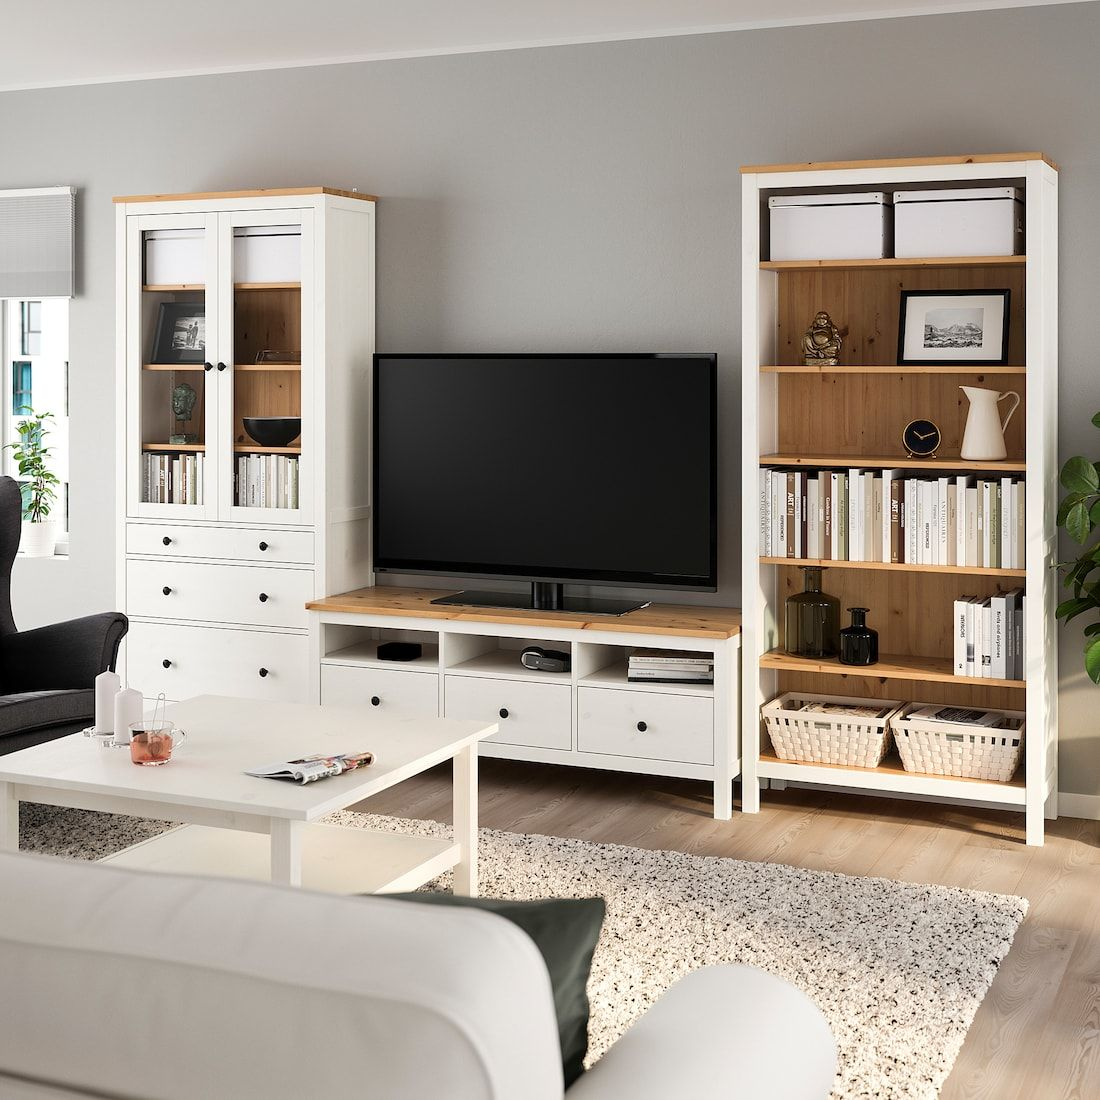 Hemnes Tv Storage Combination White Stain Light Brown Clear Glass 128 3 8x77 1 2 Tv Storage Living Room Entertainment Center Ikea Living Room